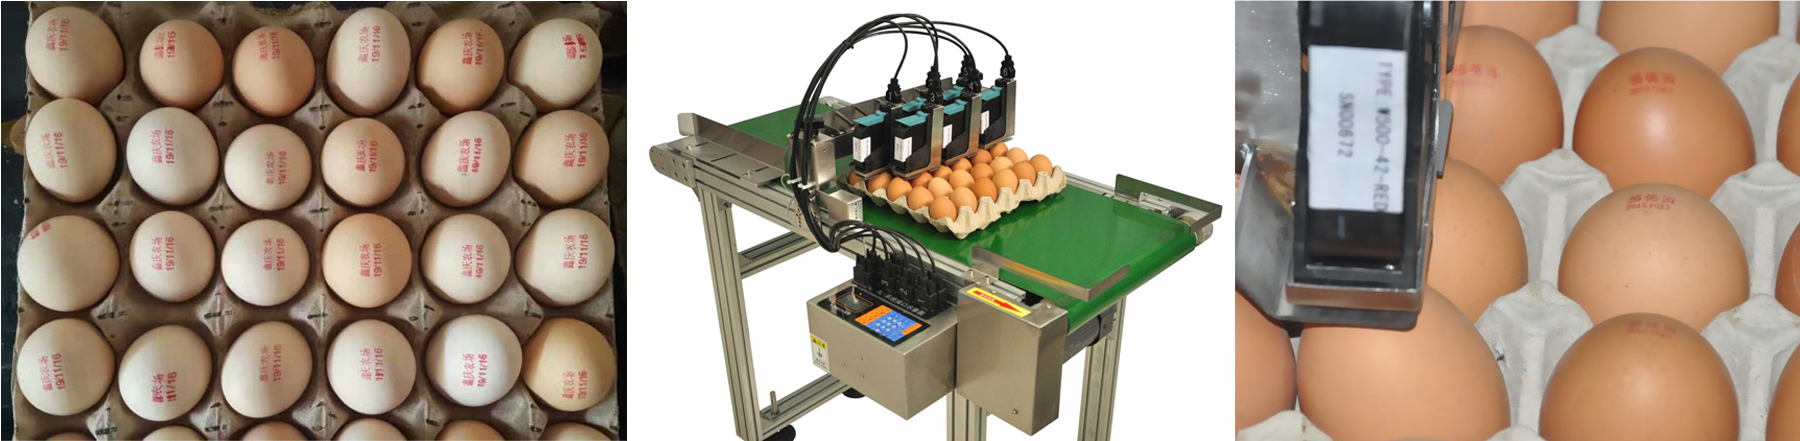 egg inkjet coding machine.jpg